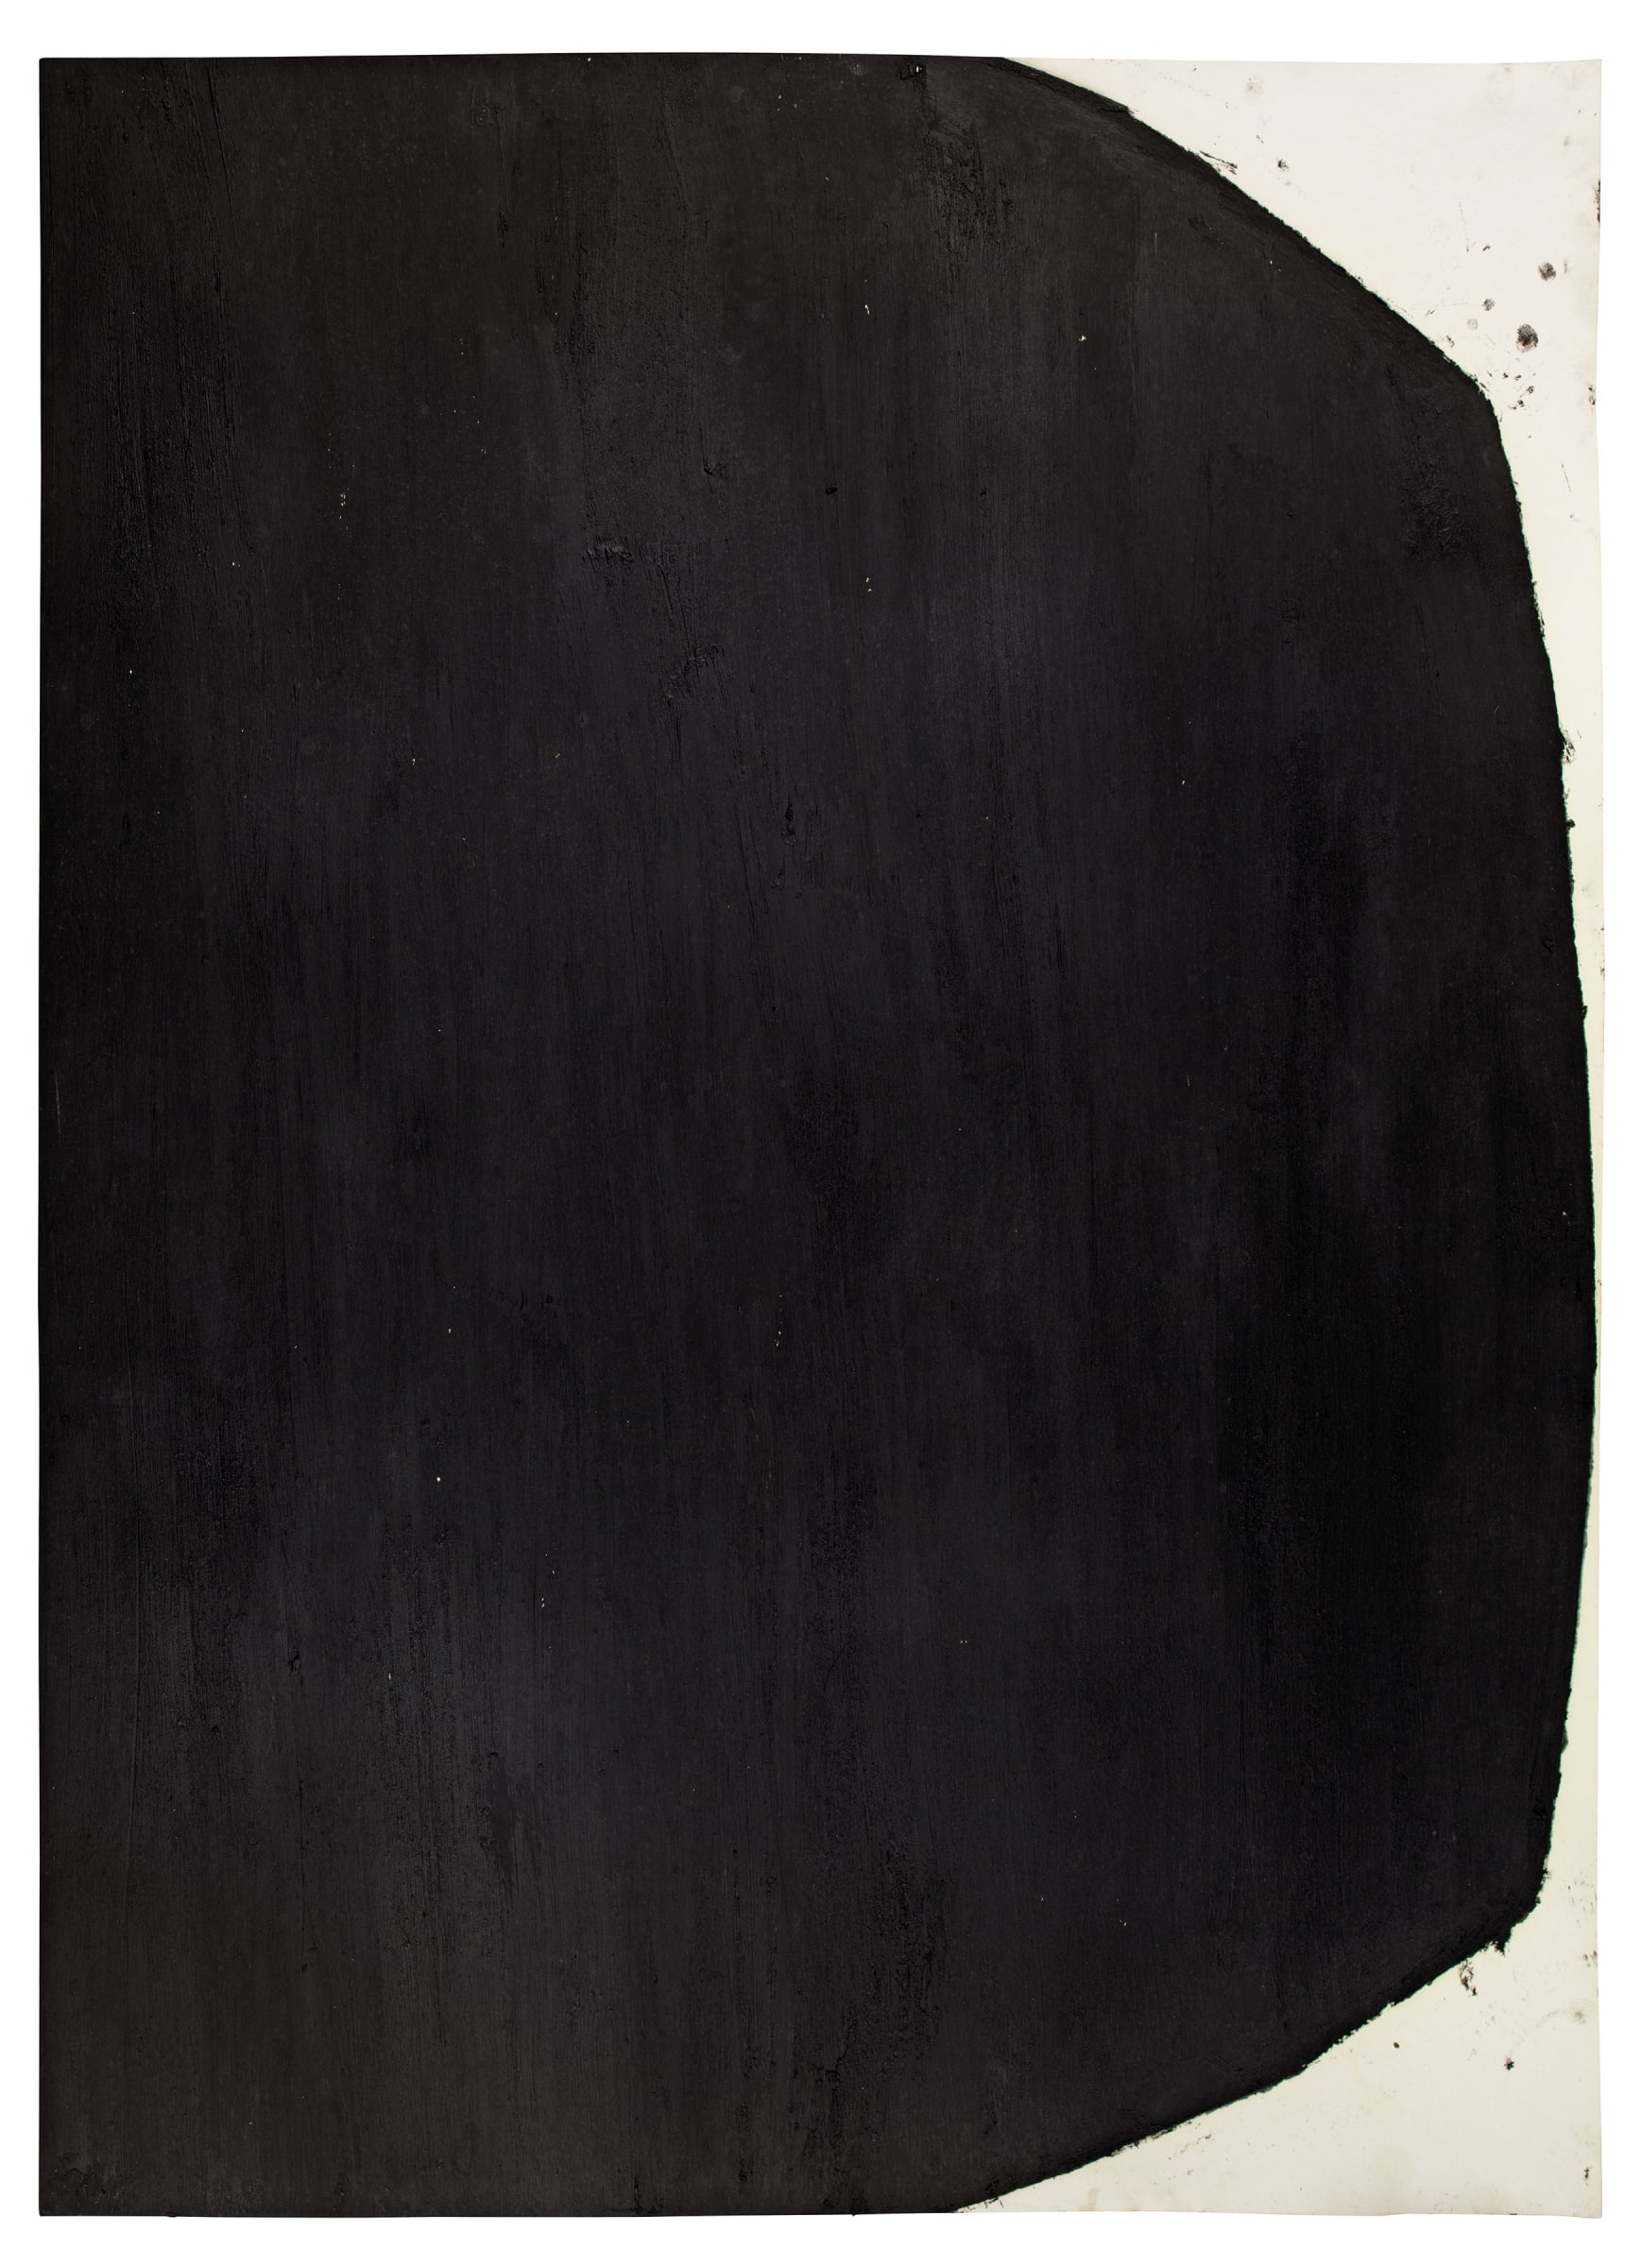 "<span class=""link fancybox-details-link""><a href=""/artists/235-richard-serra/works/11025-richard-serra-potato-arc-1981/"">View Detail Page</a></span><div class=""artist""><span class=""artist""><strong>RICHARD SERRA</strong></span></div>